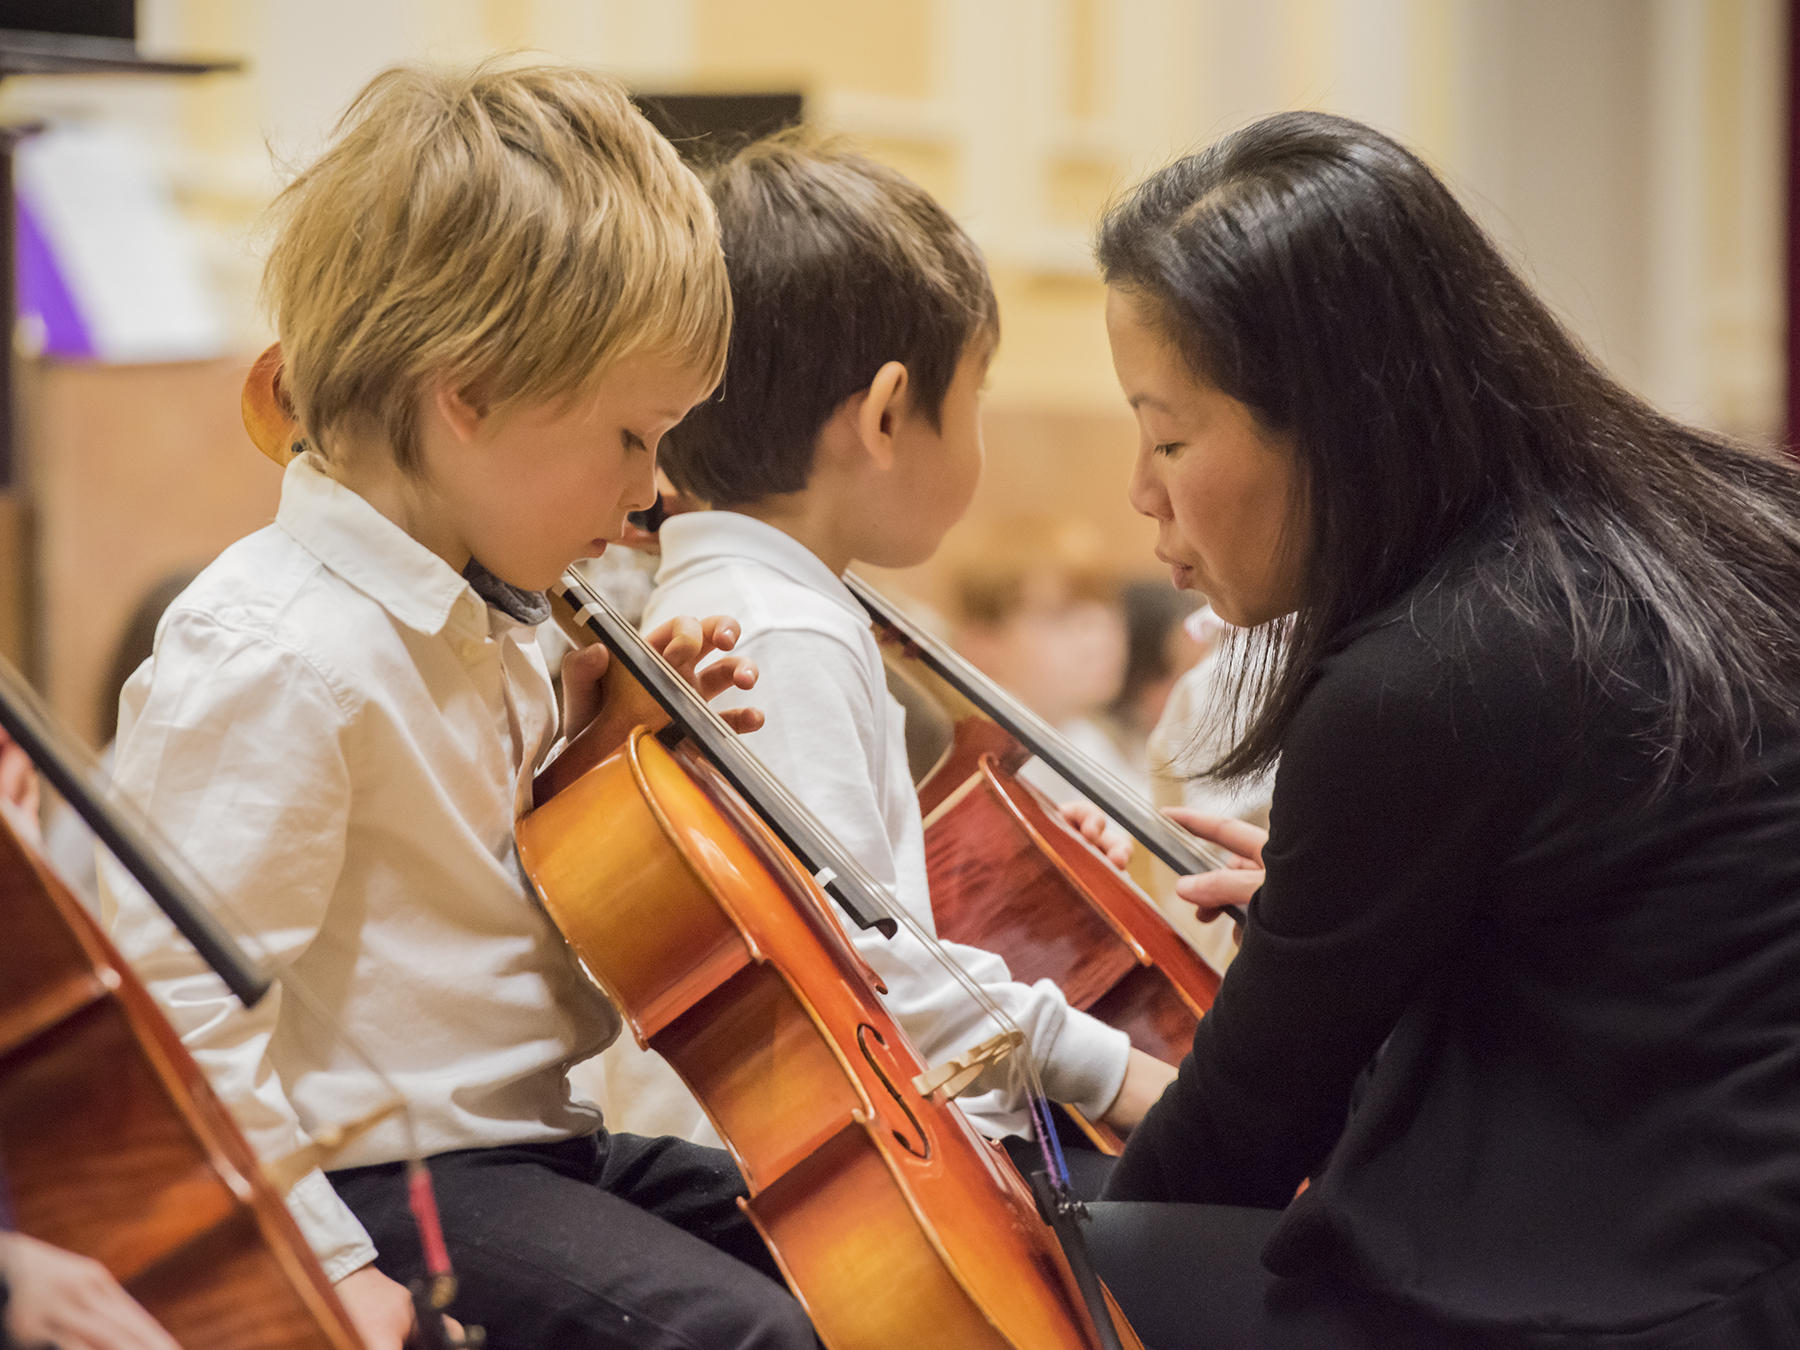 A Prep teacher helps a Suzuki cellist tune